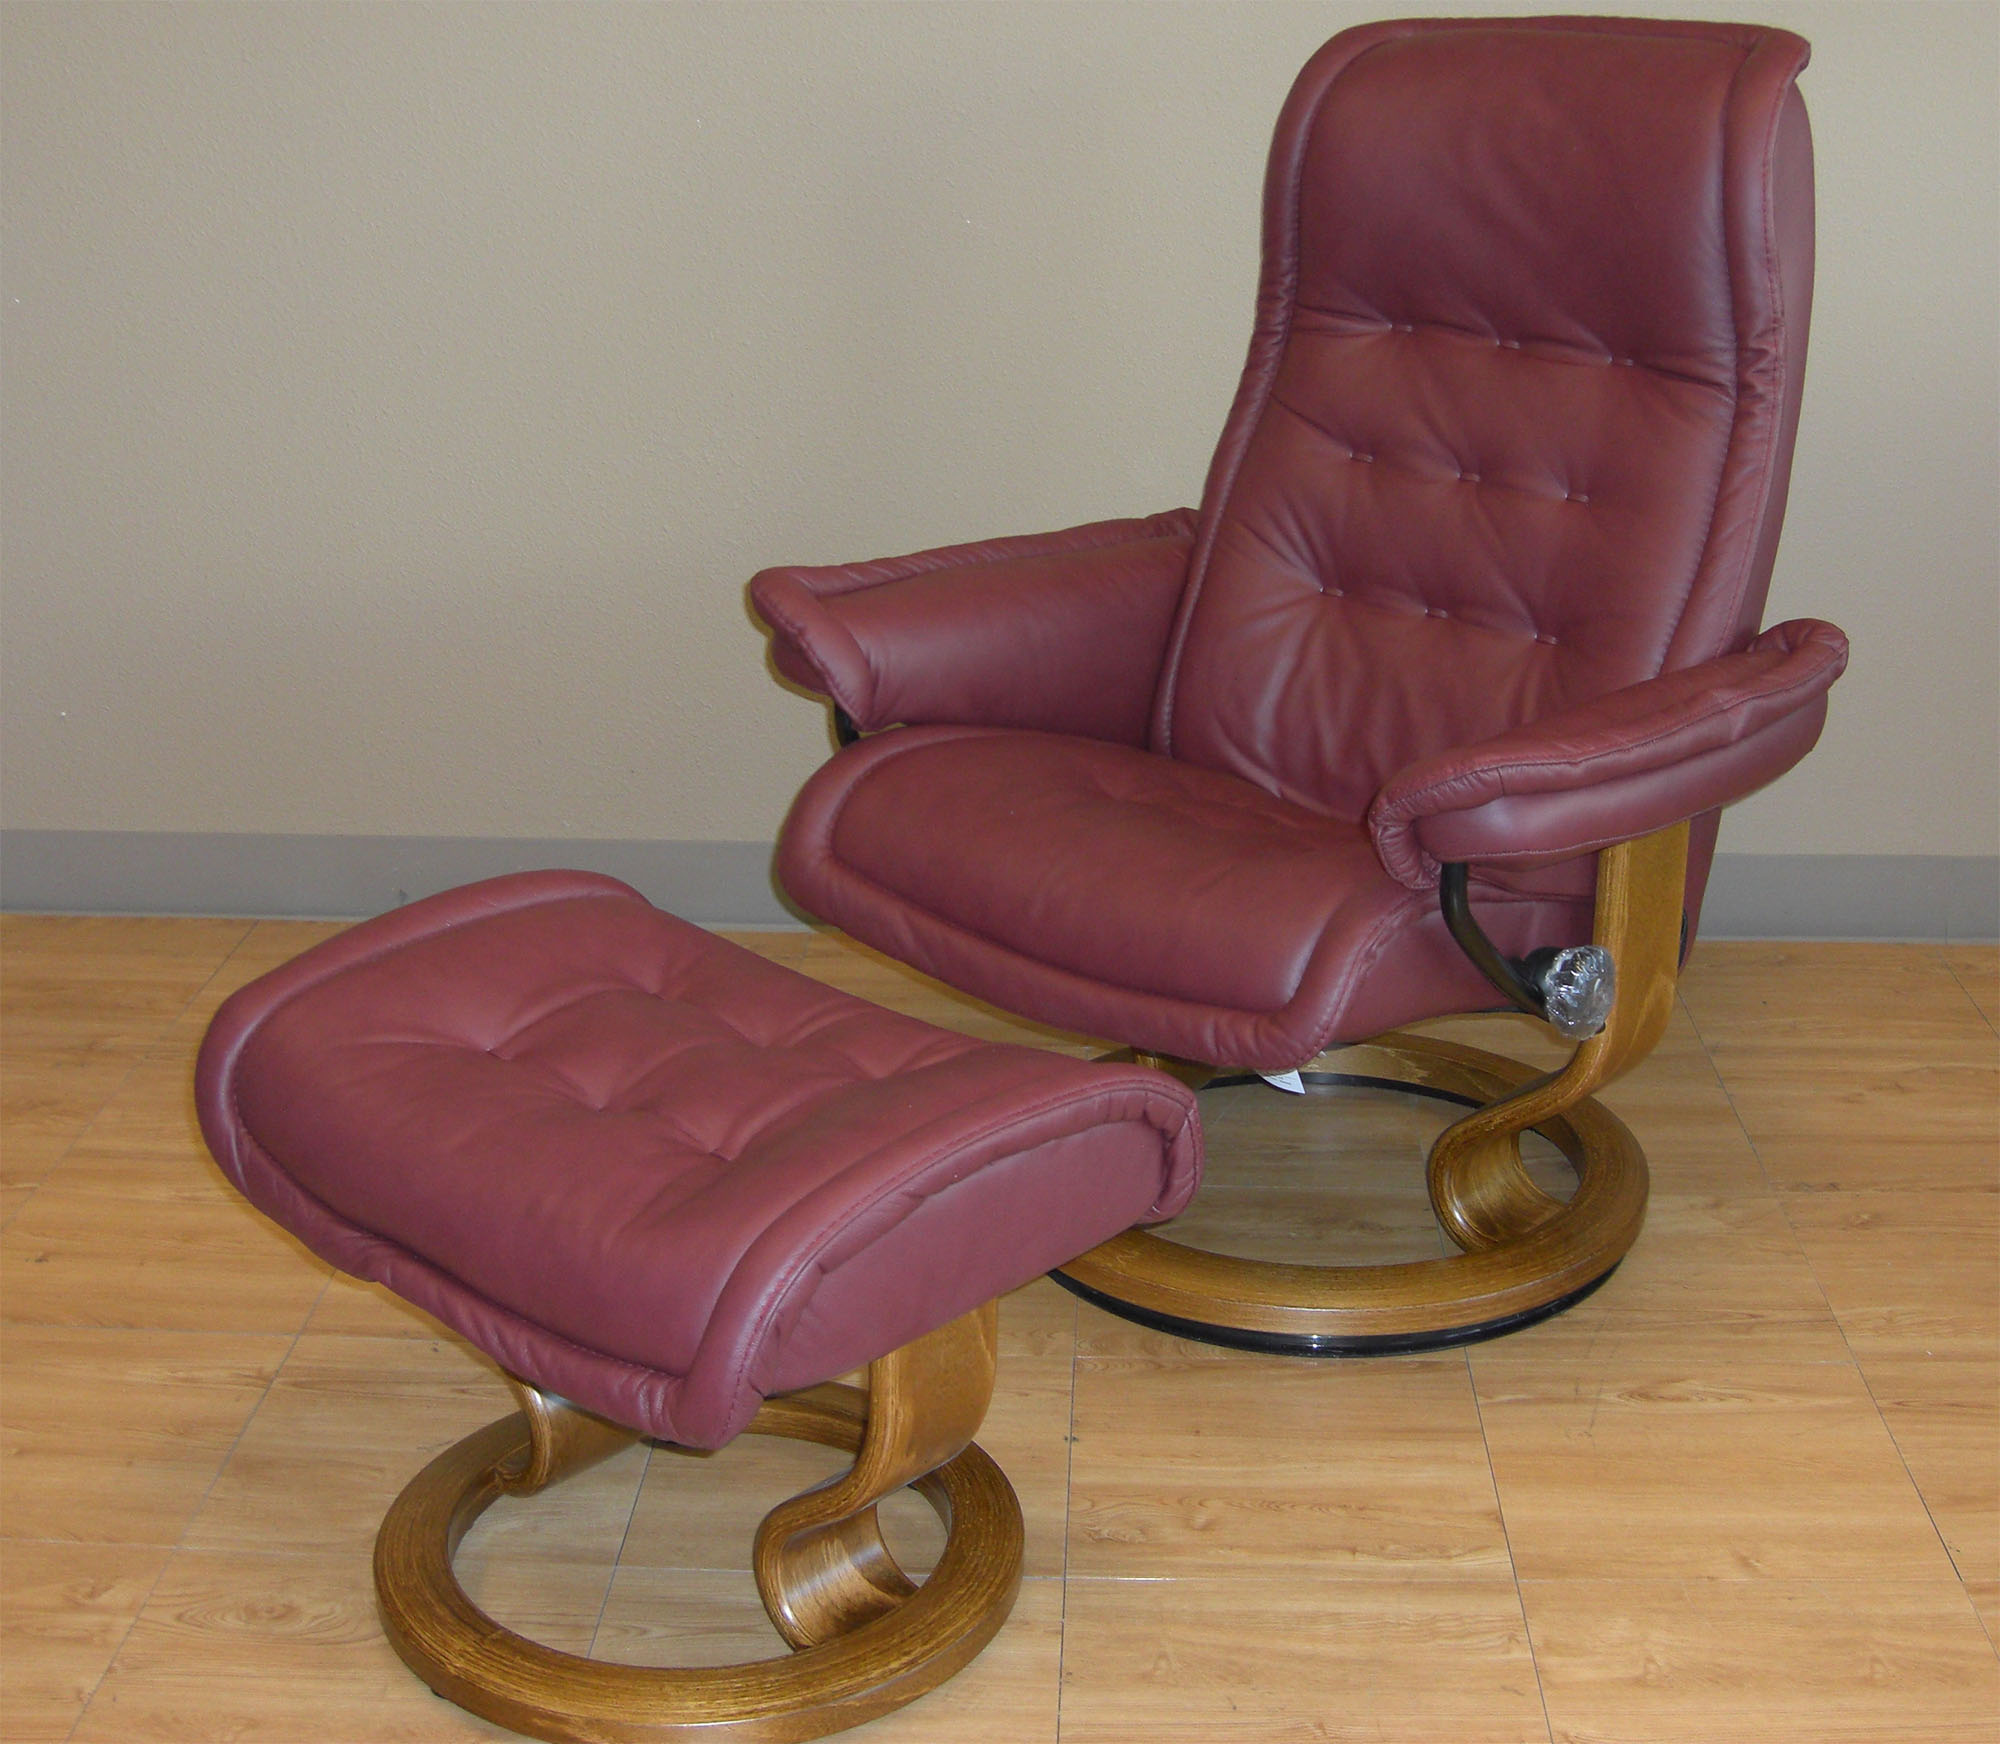 Stressless Paloma New Winered Leather Color Recliner Chair and Ottoman from Ekornes